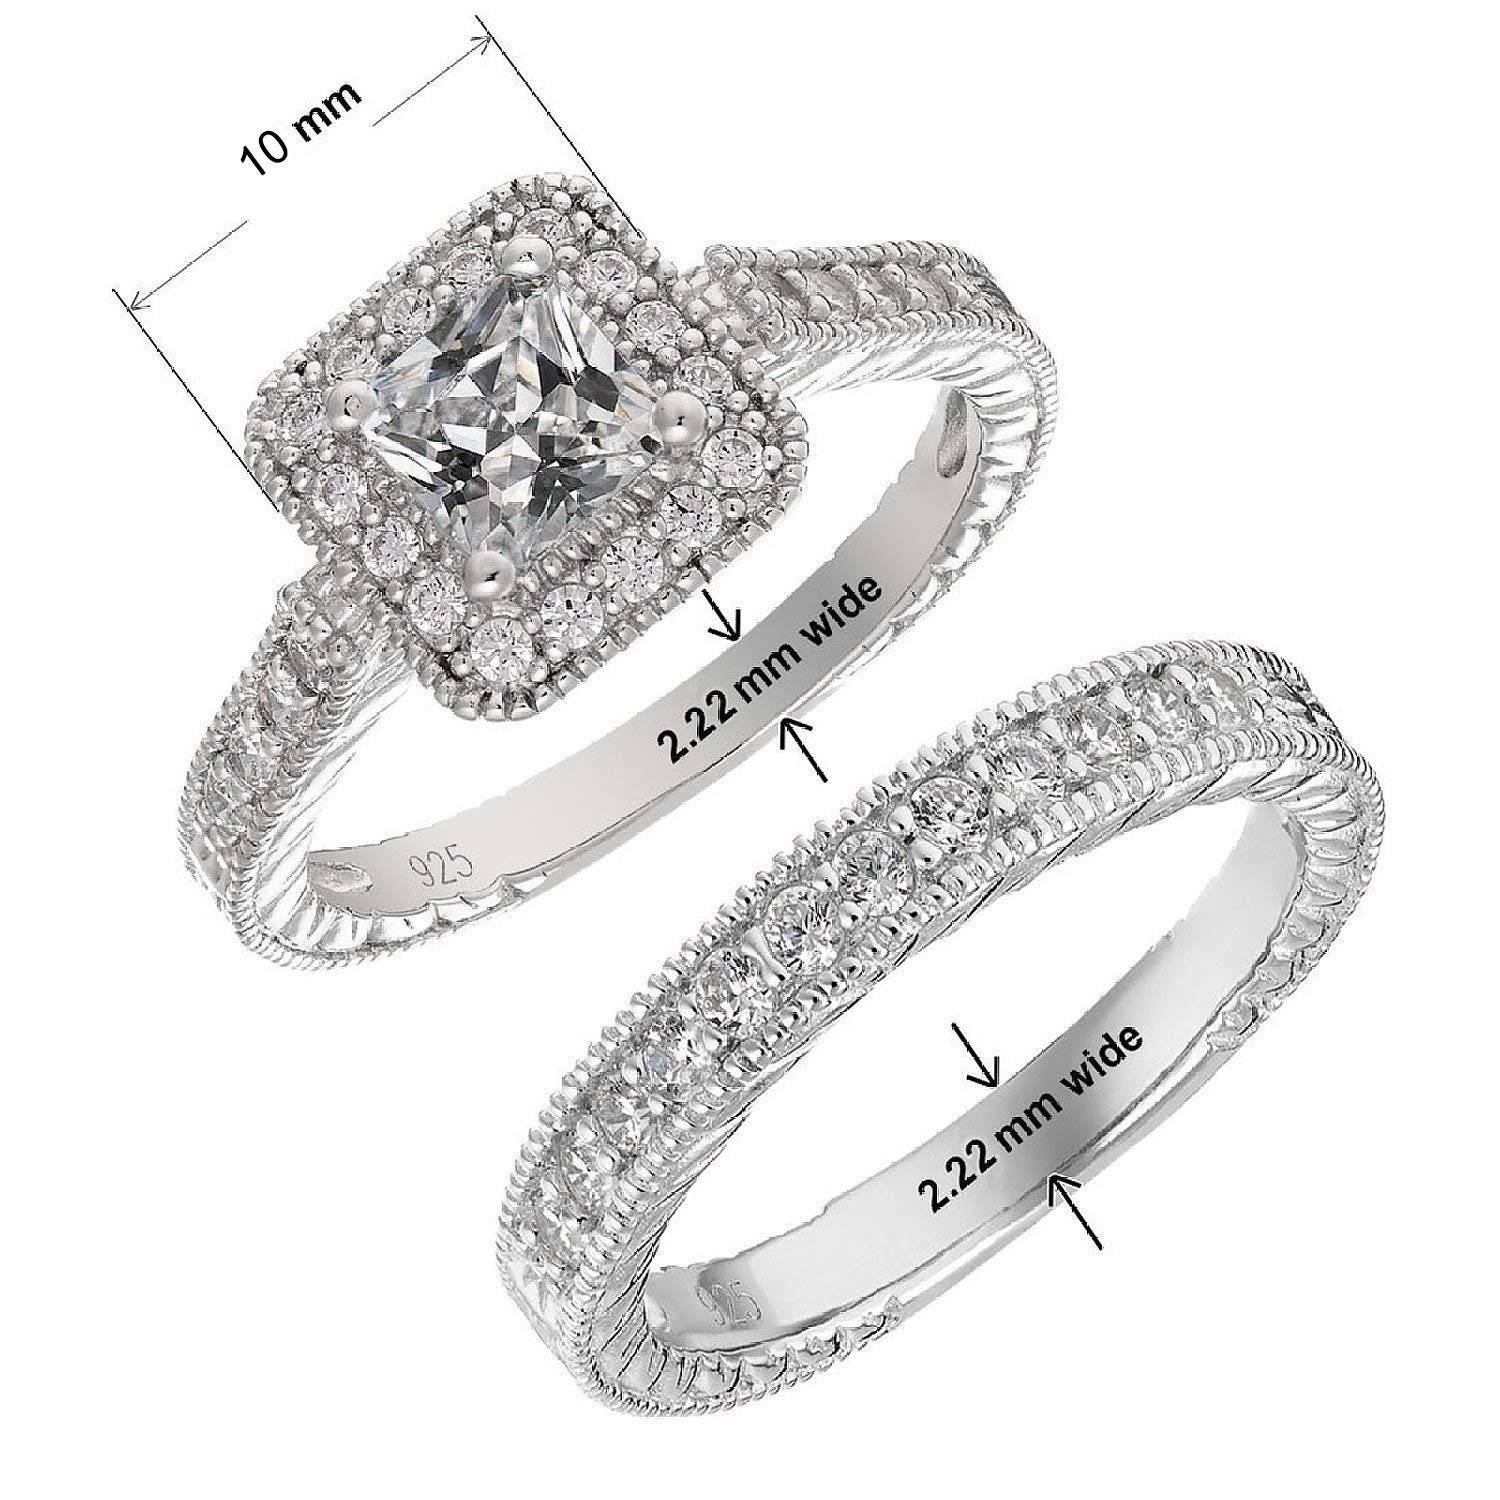 Panghoo Solid 925 Sterling Silver Cz Engagement Wedding Ring Set Women (6)